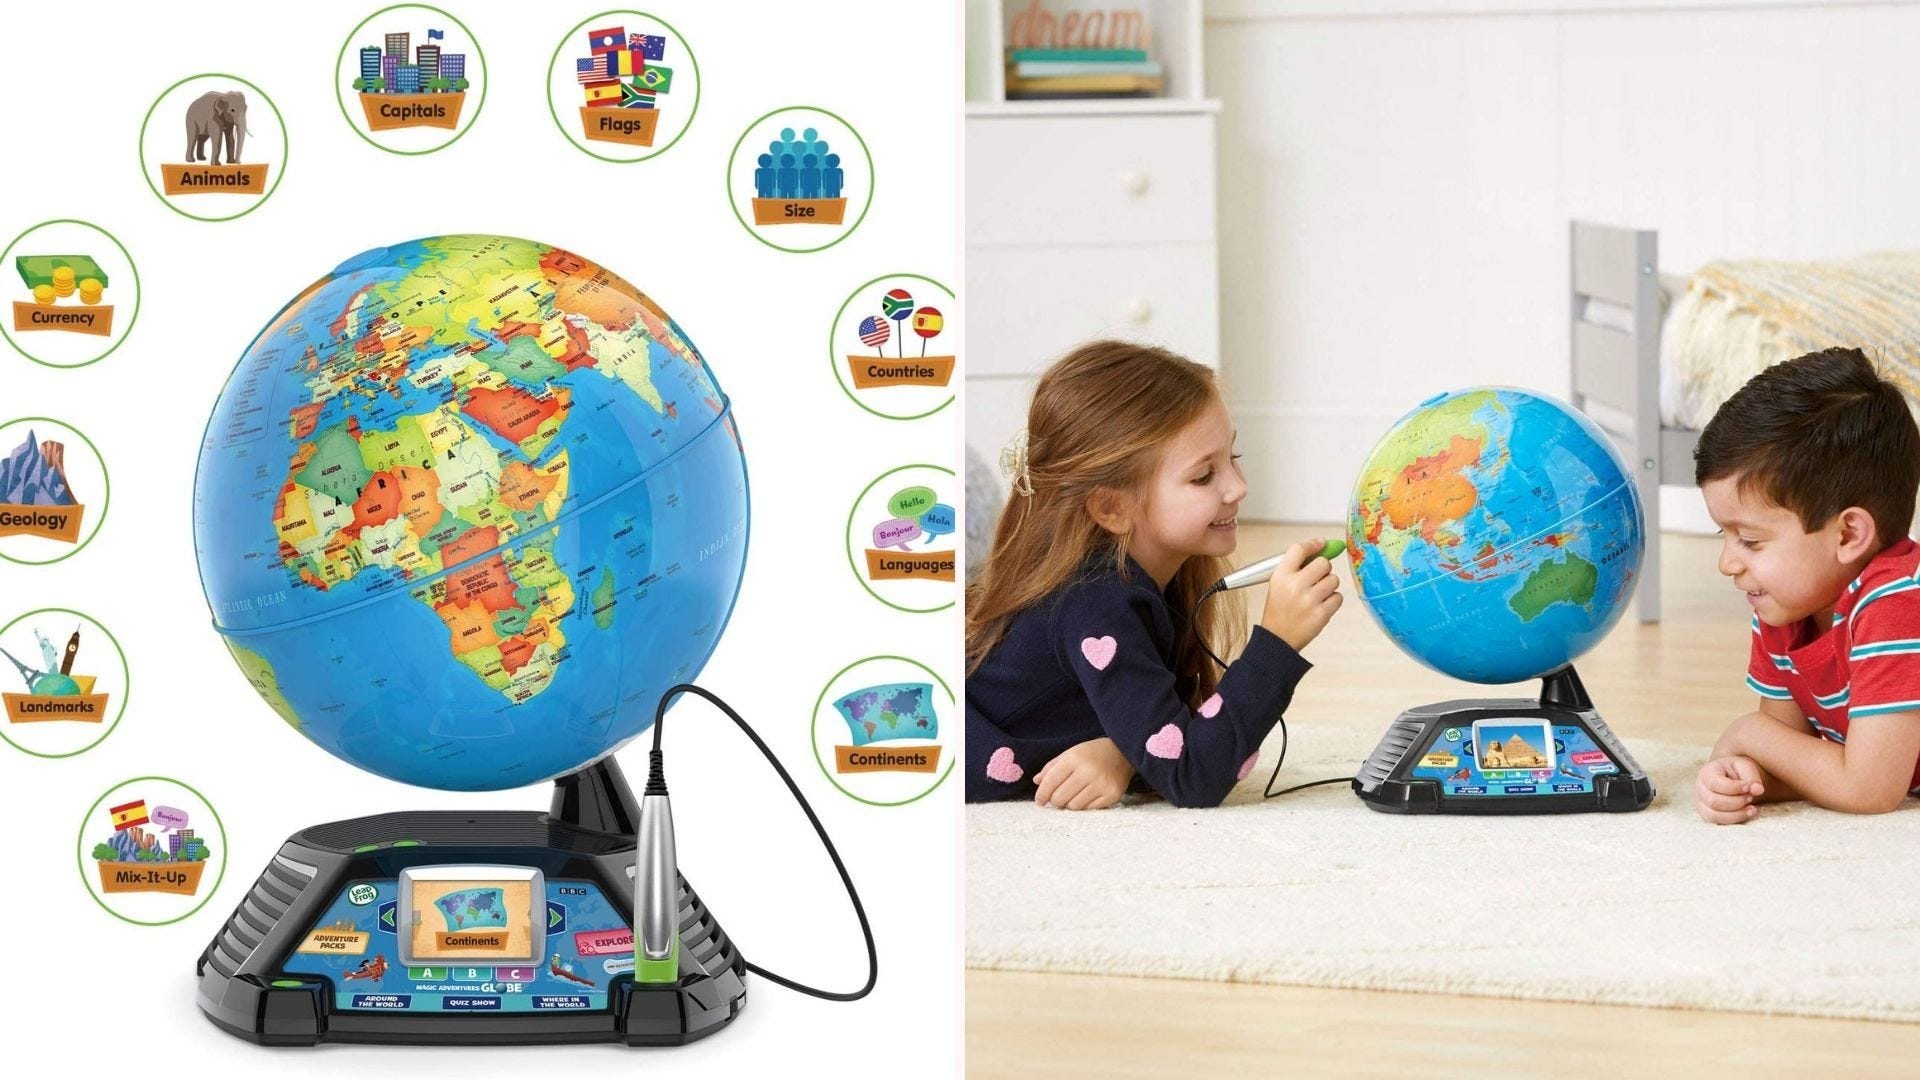 On the left, an 11-inch globe that features an electronically powered base with 2.7-inch LCD screen and a wired stylus. On the left, two children study the globe while laying down on a bedroom floor.